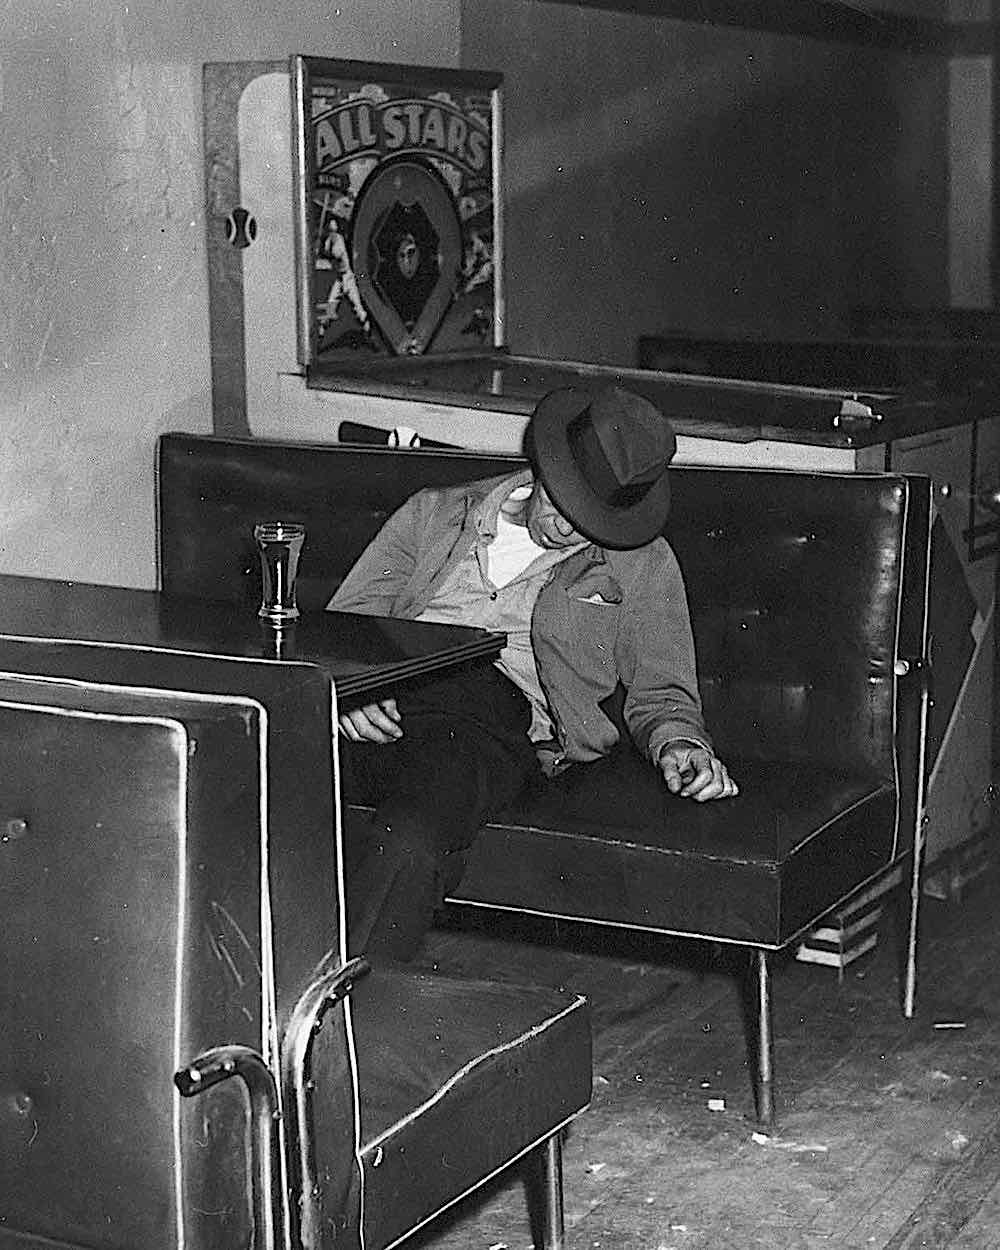 a 1940 photograph by Wee Gee, of a lonely man alseep in a bar